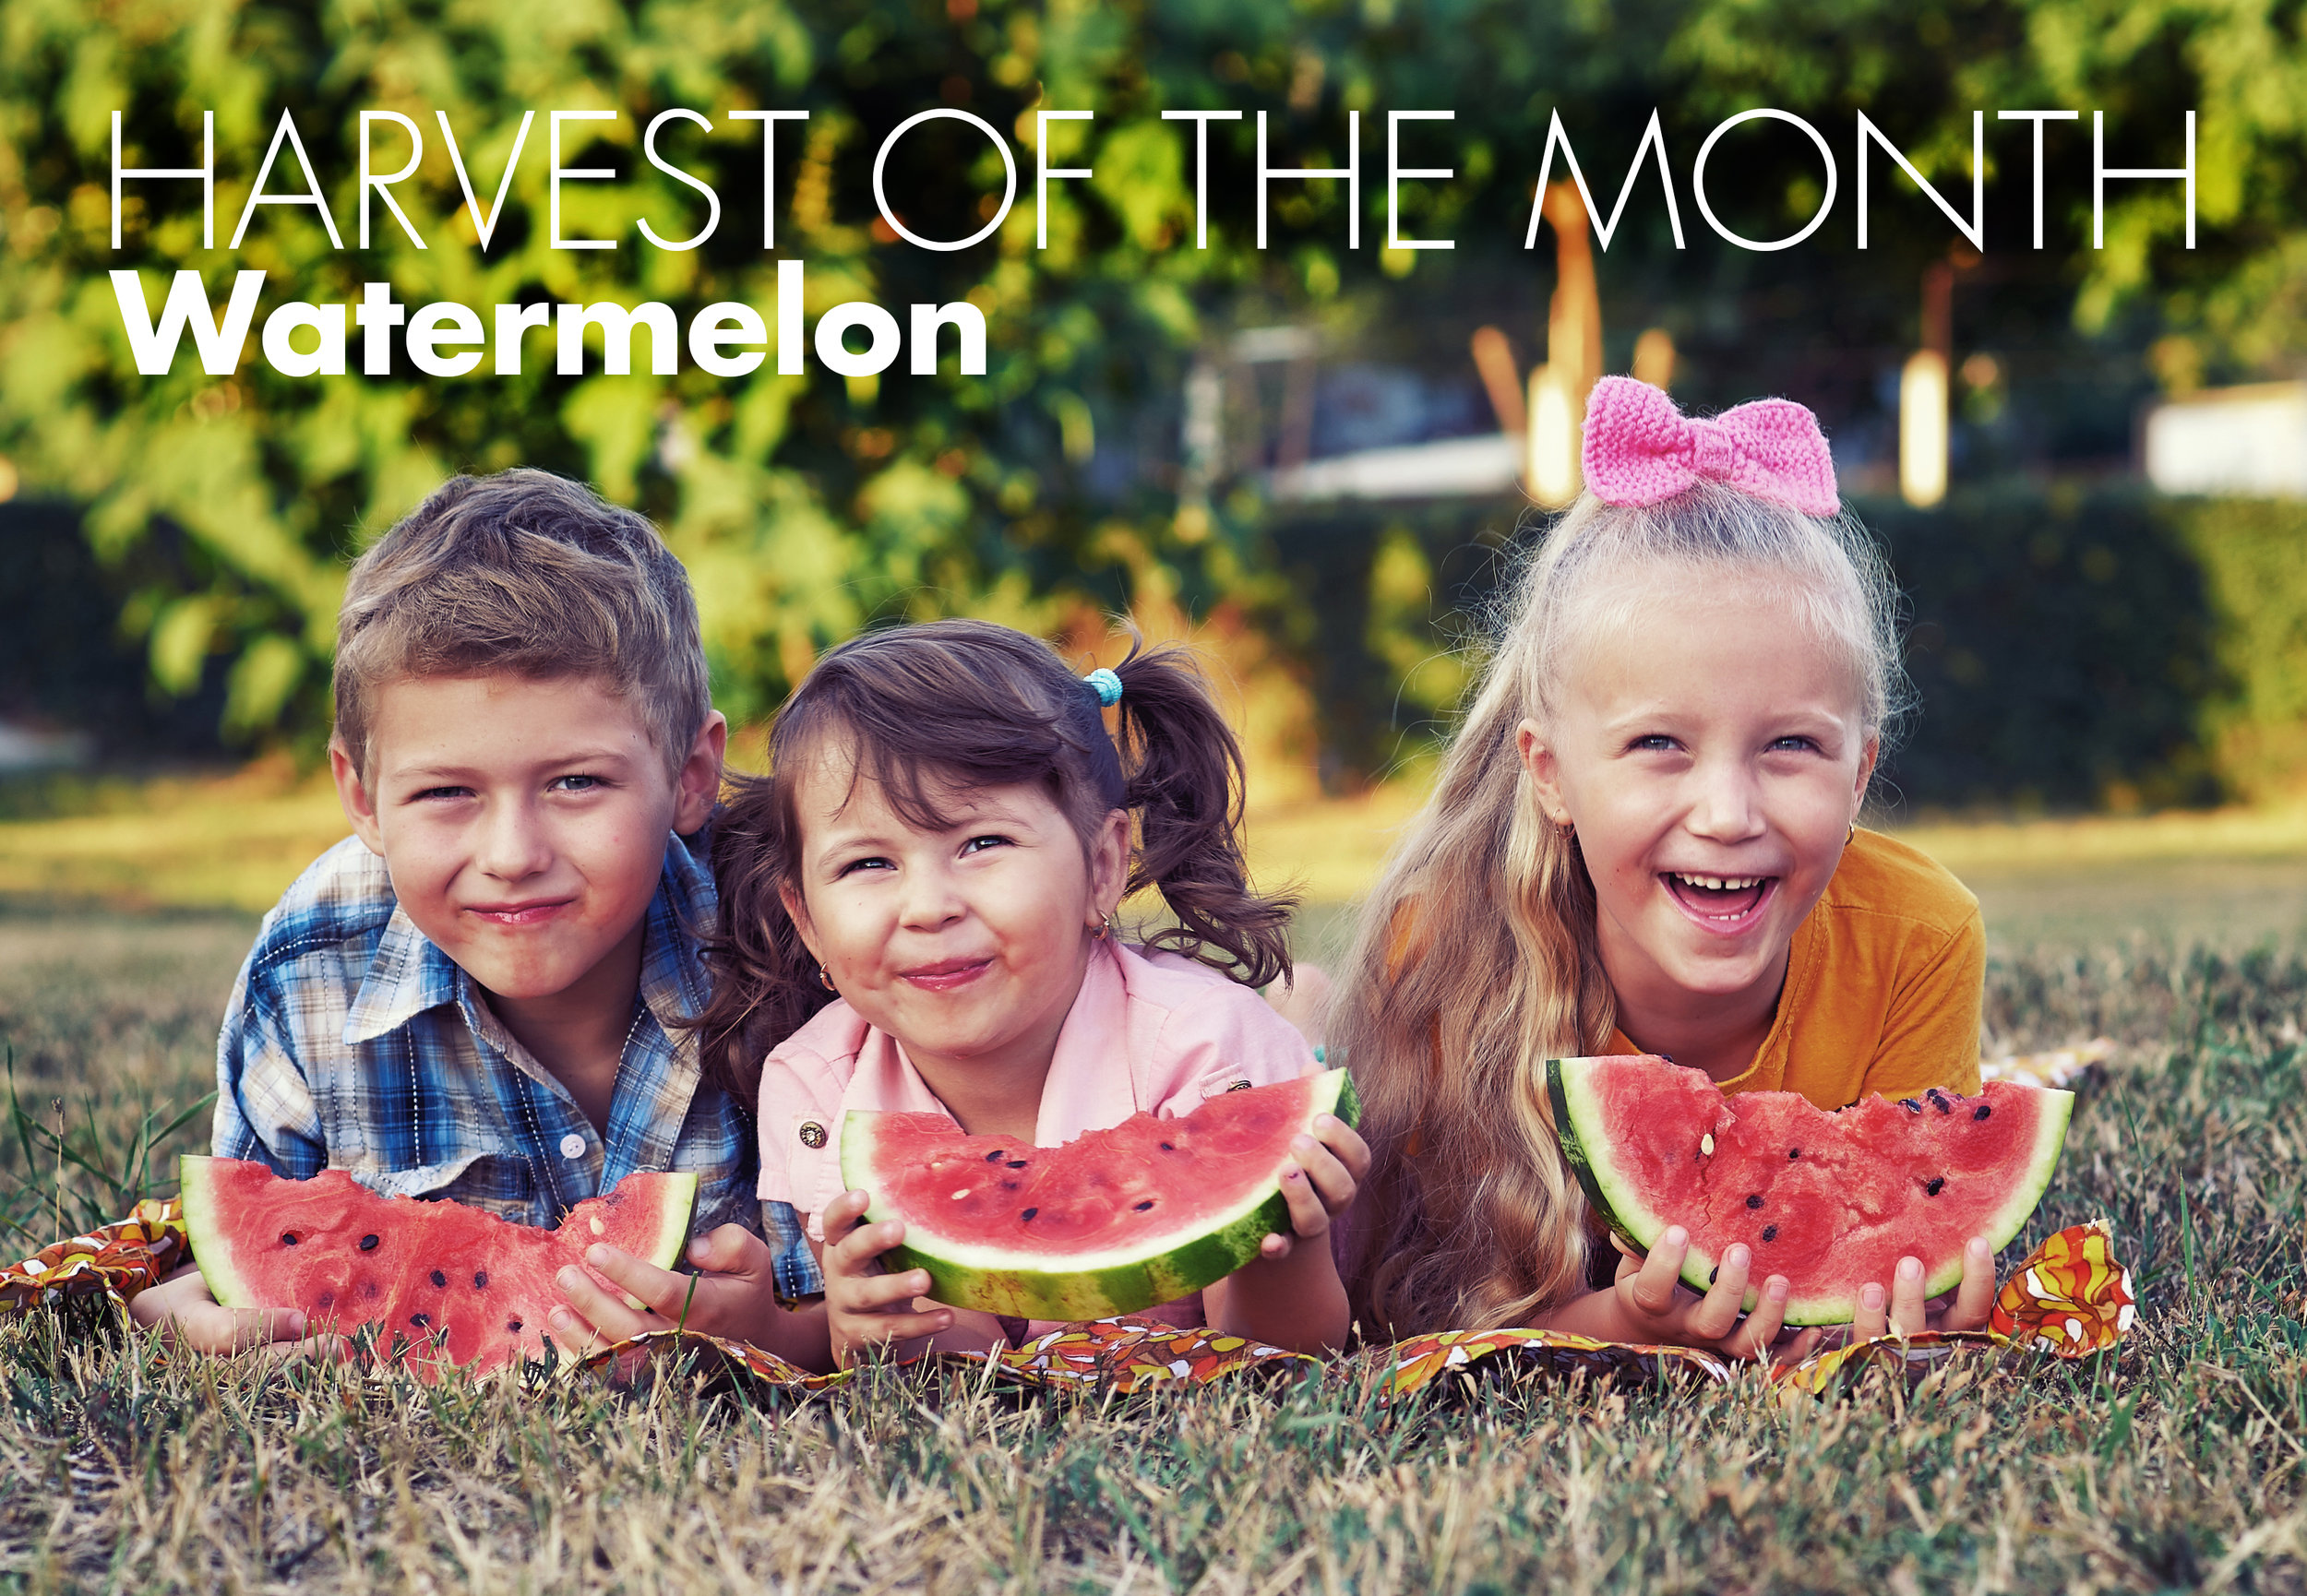 kids_eating_watermelon_text.jpg